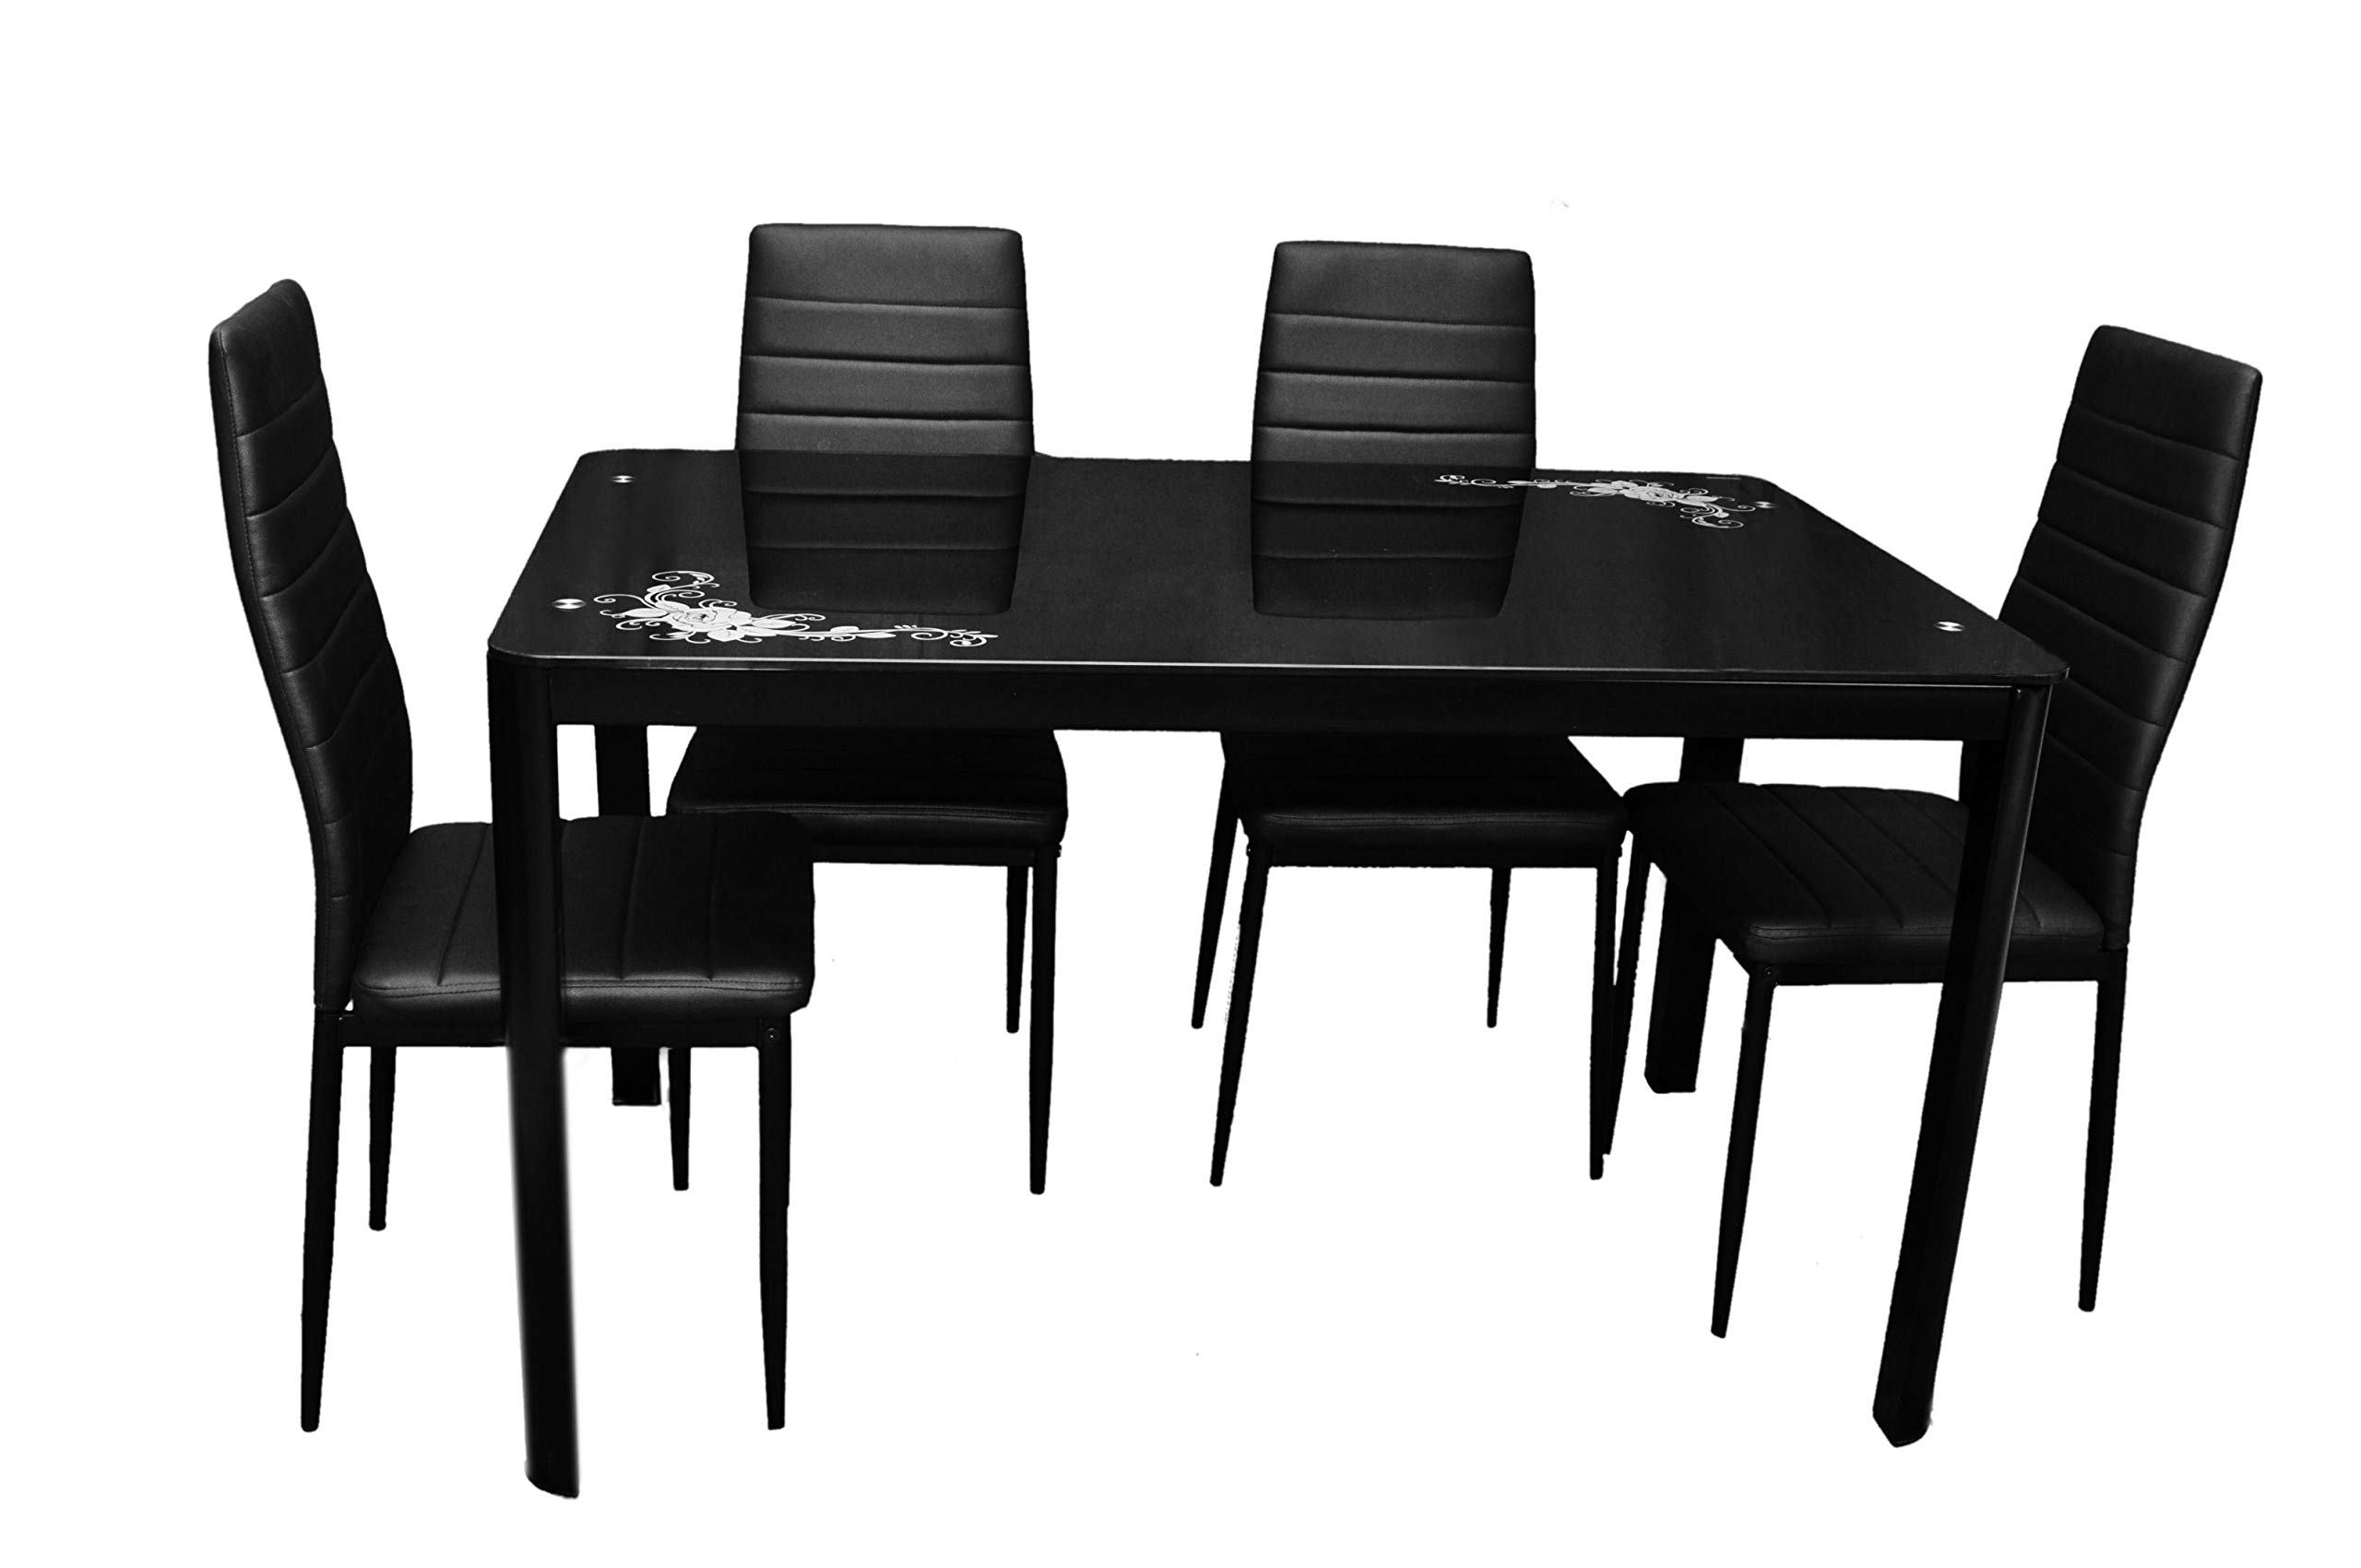 Zena Metal And Glass Dining Table Set, With 4 Chairs, Black 130 Cm X 80 Cm X 74 Cm With Regard To Trendy Glass Dining Tables With Metal Legs (View 16 of 25)